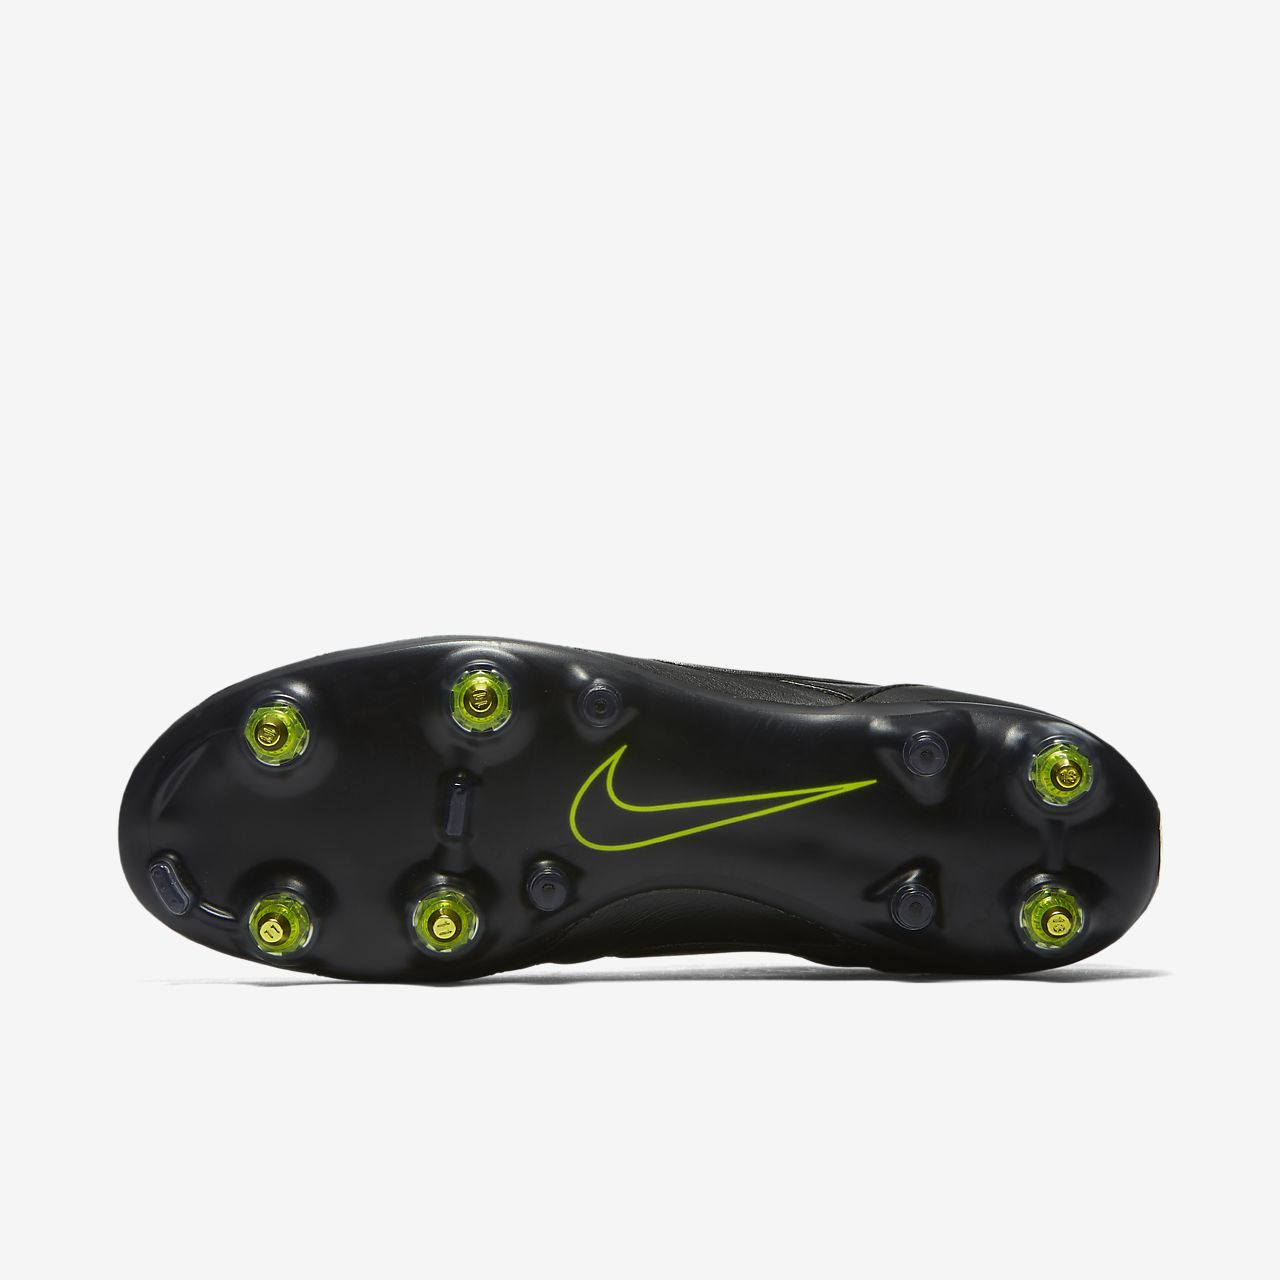 12e1819bb517 ... Nike Premier II Anti-Clog Traction SG-PRO Soft-Ground Football Boot